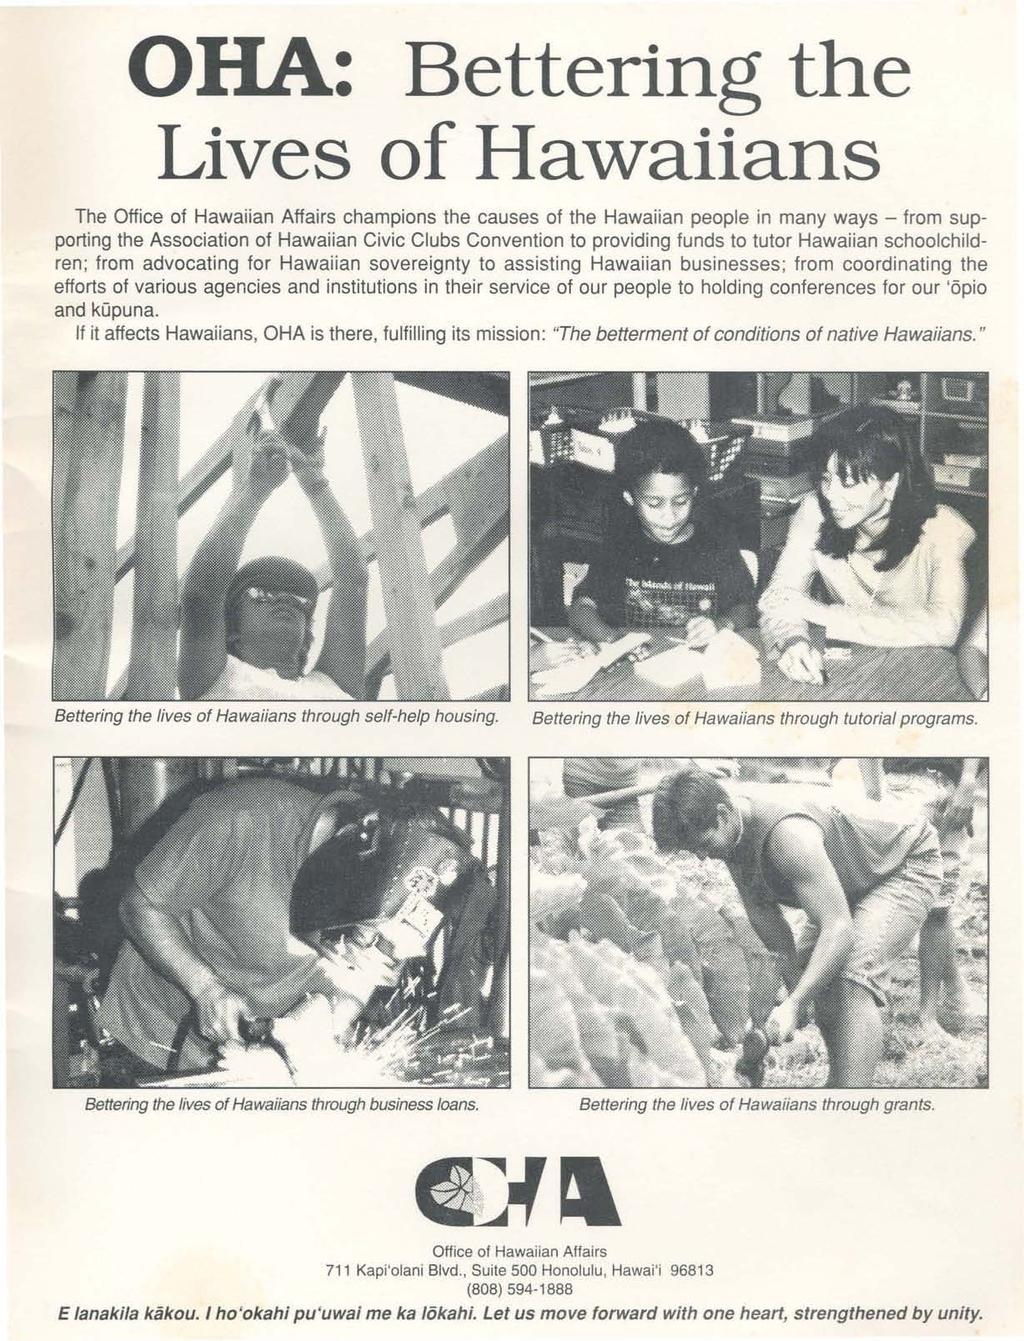 OHA: Bettering th e Lives of Hawaiian s The Office of Hawaiian Affairs champions the causes of the Hawai ian people in many ways - from supporting the Association of Hawaiian Civic Clubs Convention